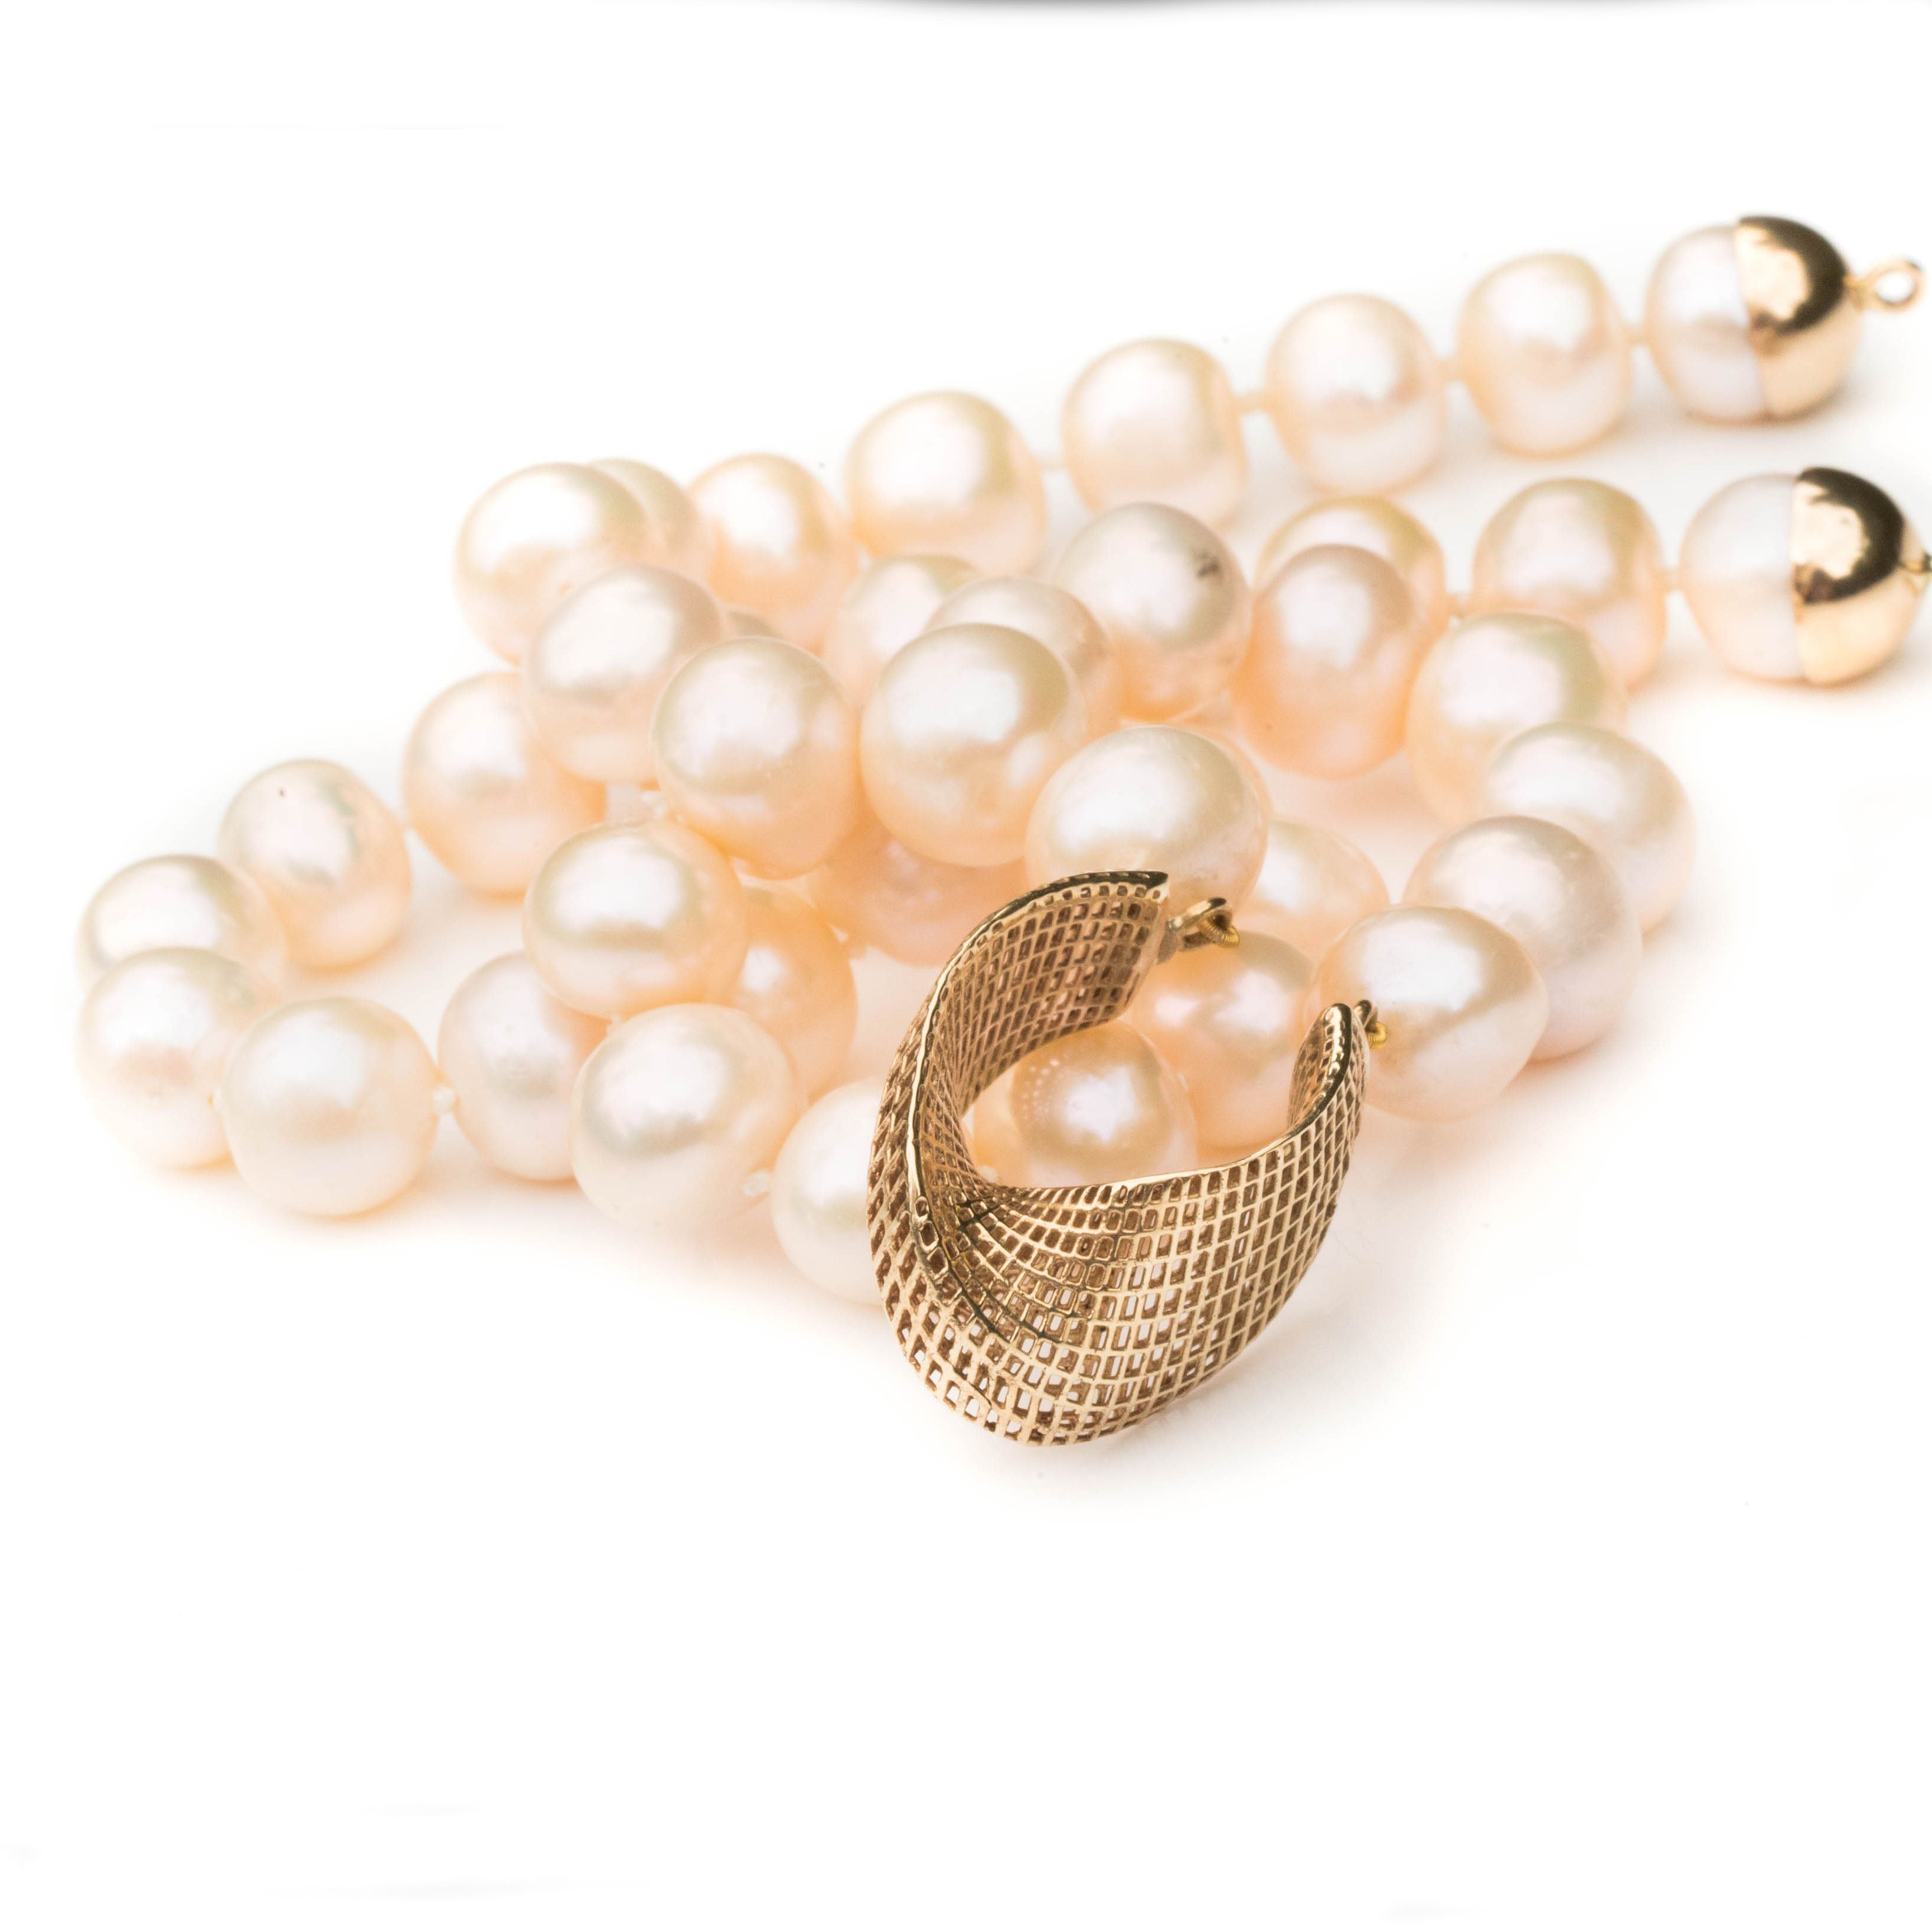 14K - Unique Freshwater Pearls Necklace - Net mobius center piece